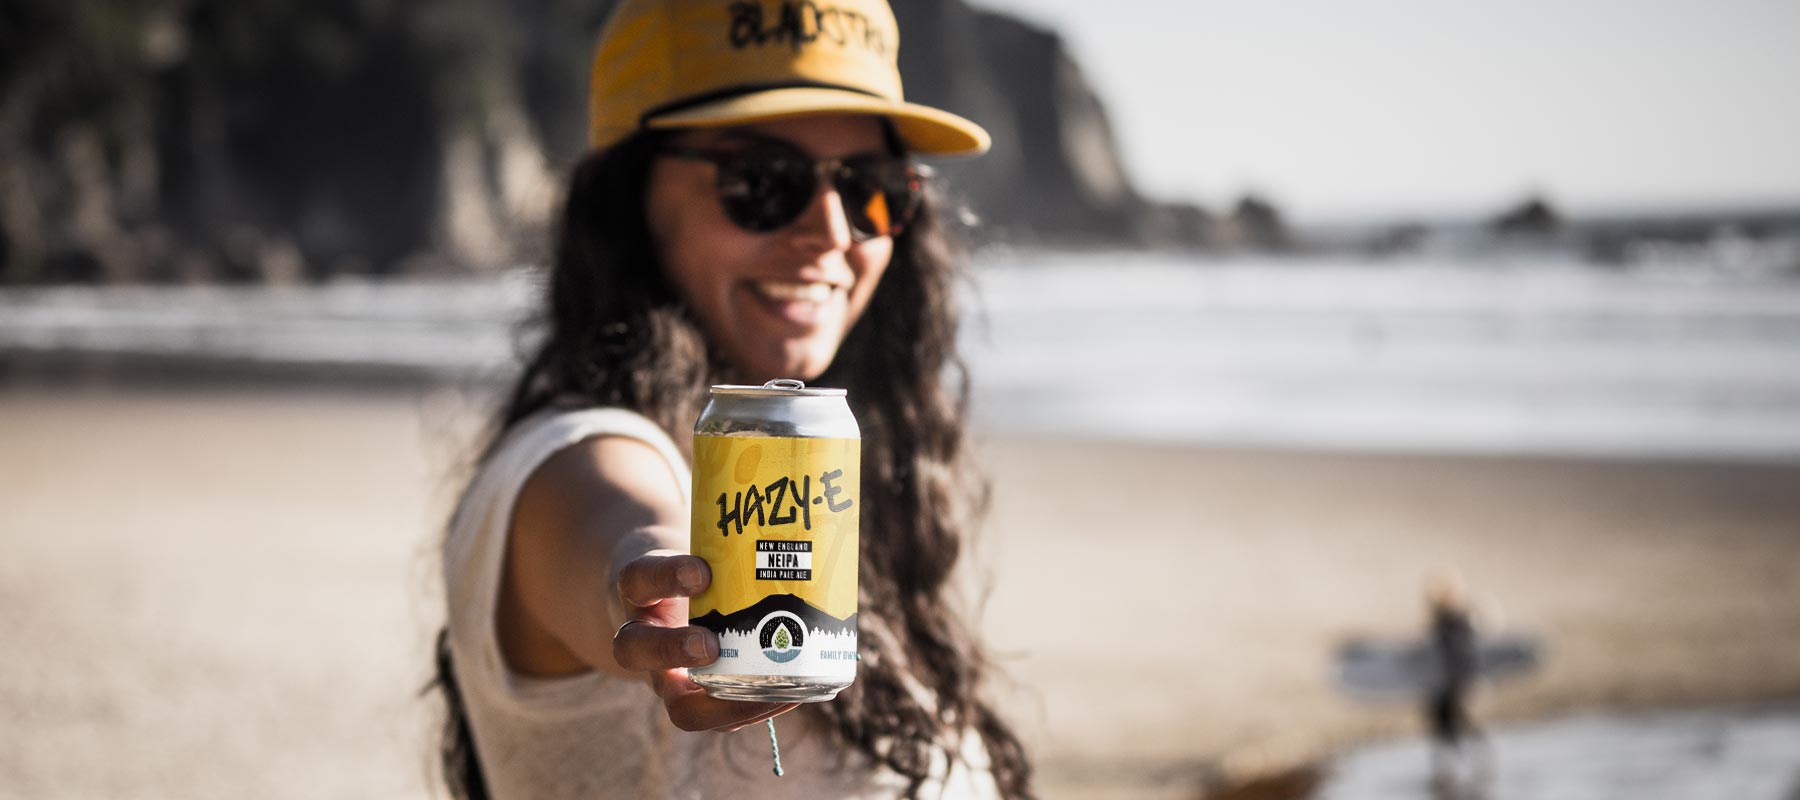 Girl Holding Hazy-E Immersion Brewing Beer